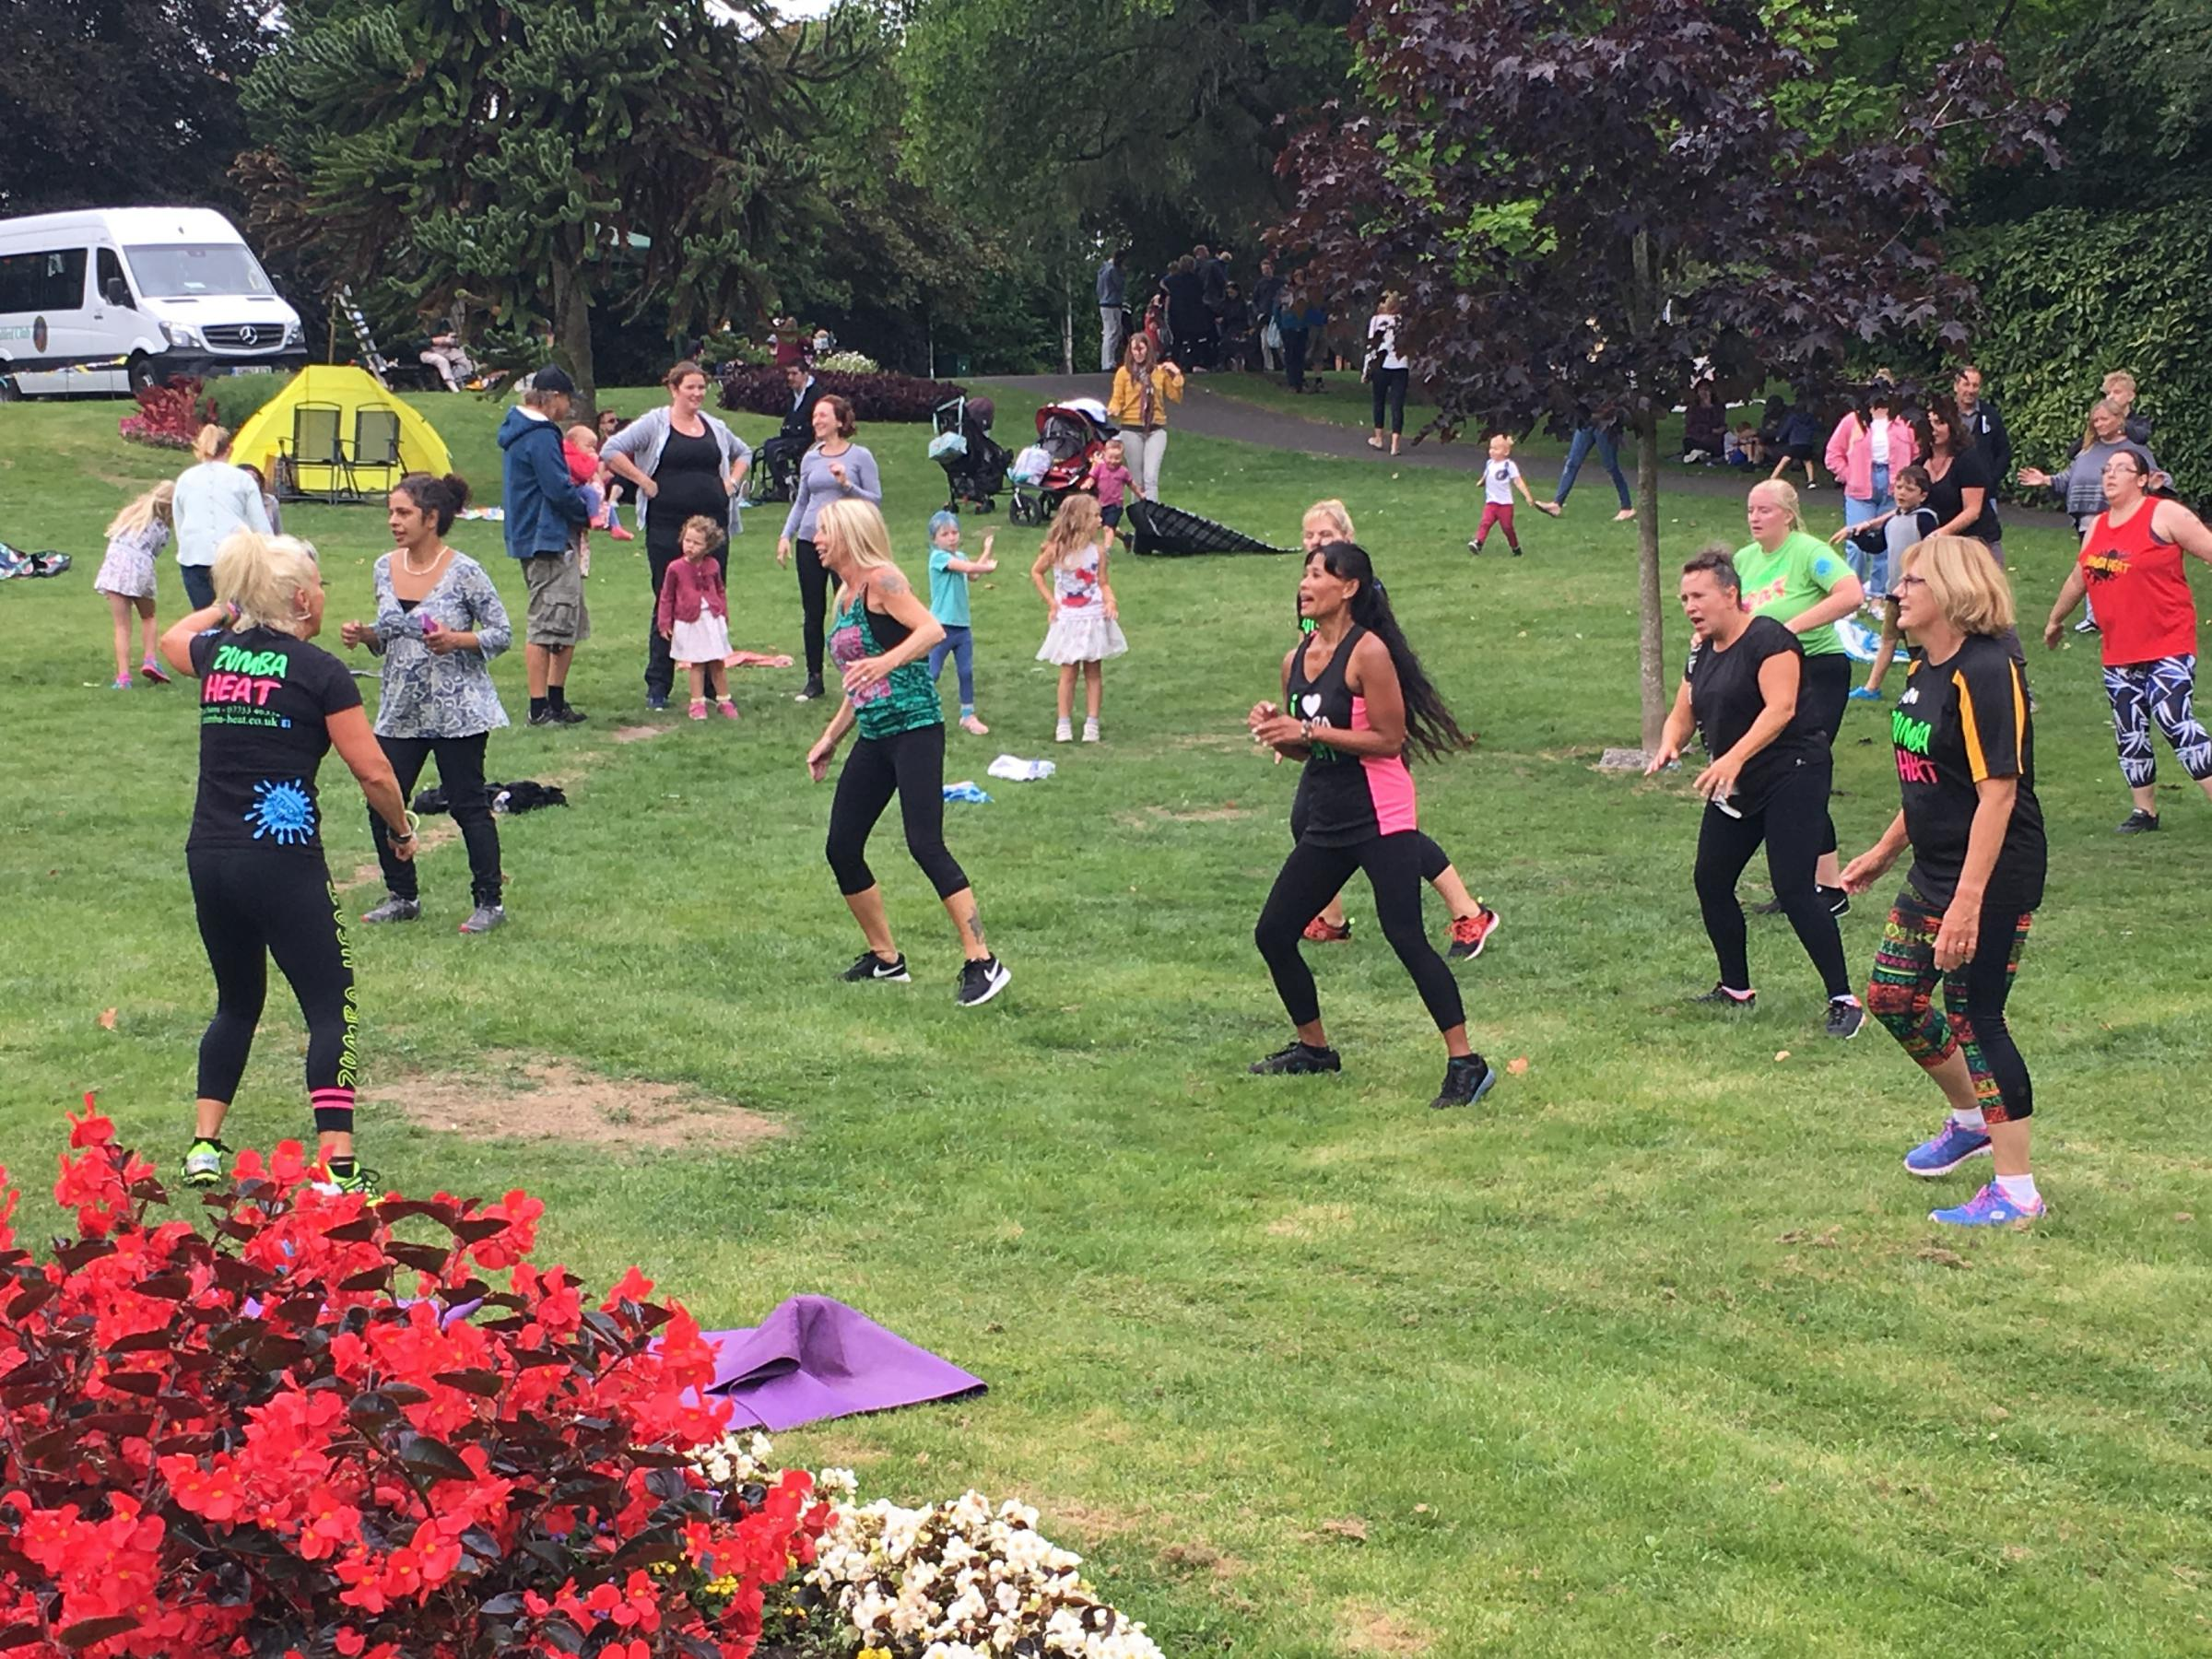 Picnic in the Park returns to Dorchester next month